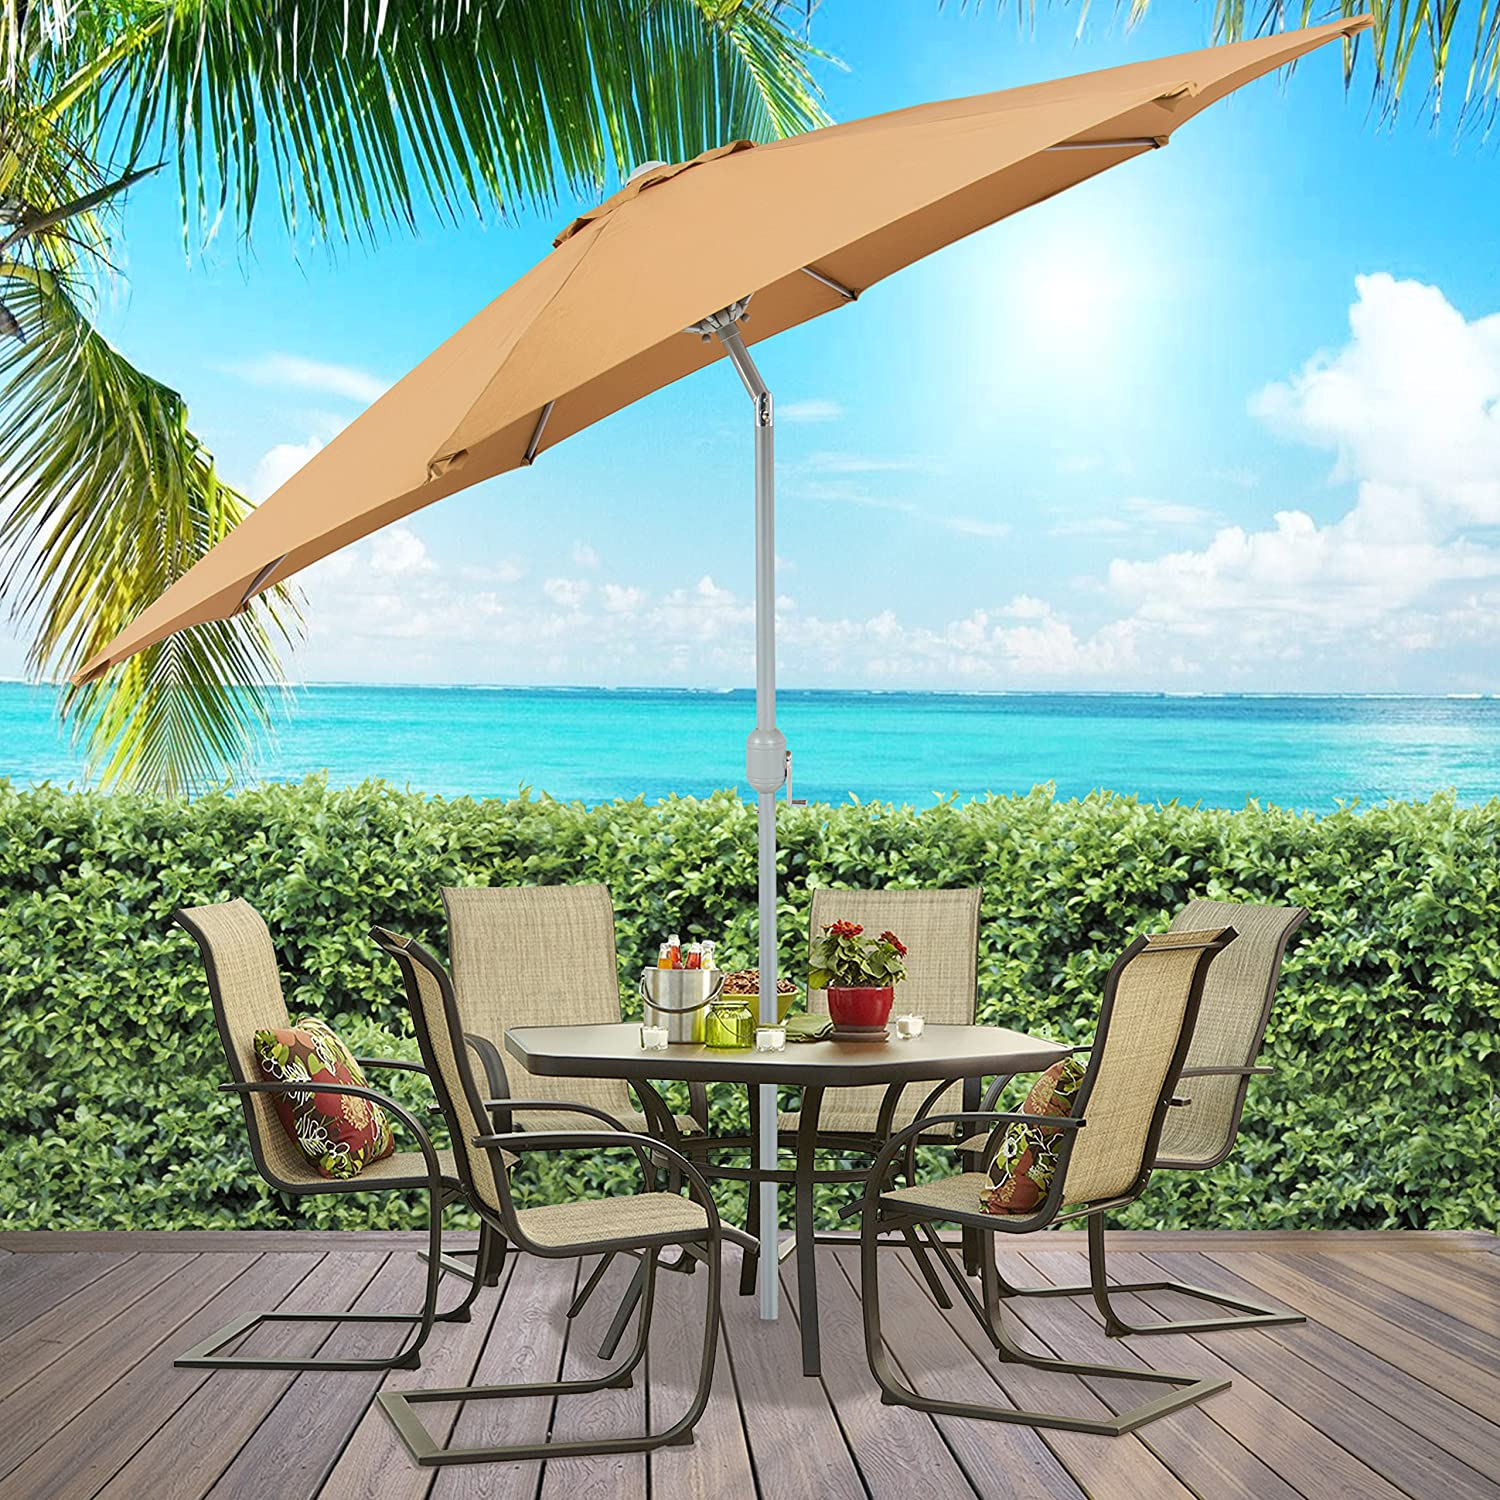 High Quality Amazon.com : Best Choice Products Patio Umbrella 9u0027 Aluminum Patio Market  Umbrella Tilt W/ Crank Outdoor : Patio, Lawn U0026 Garden Awesome Design